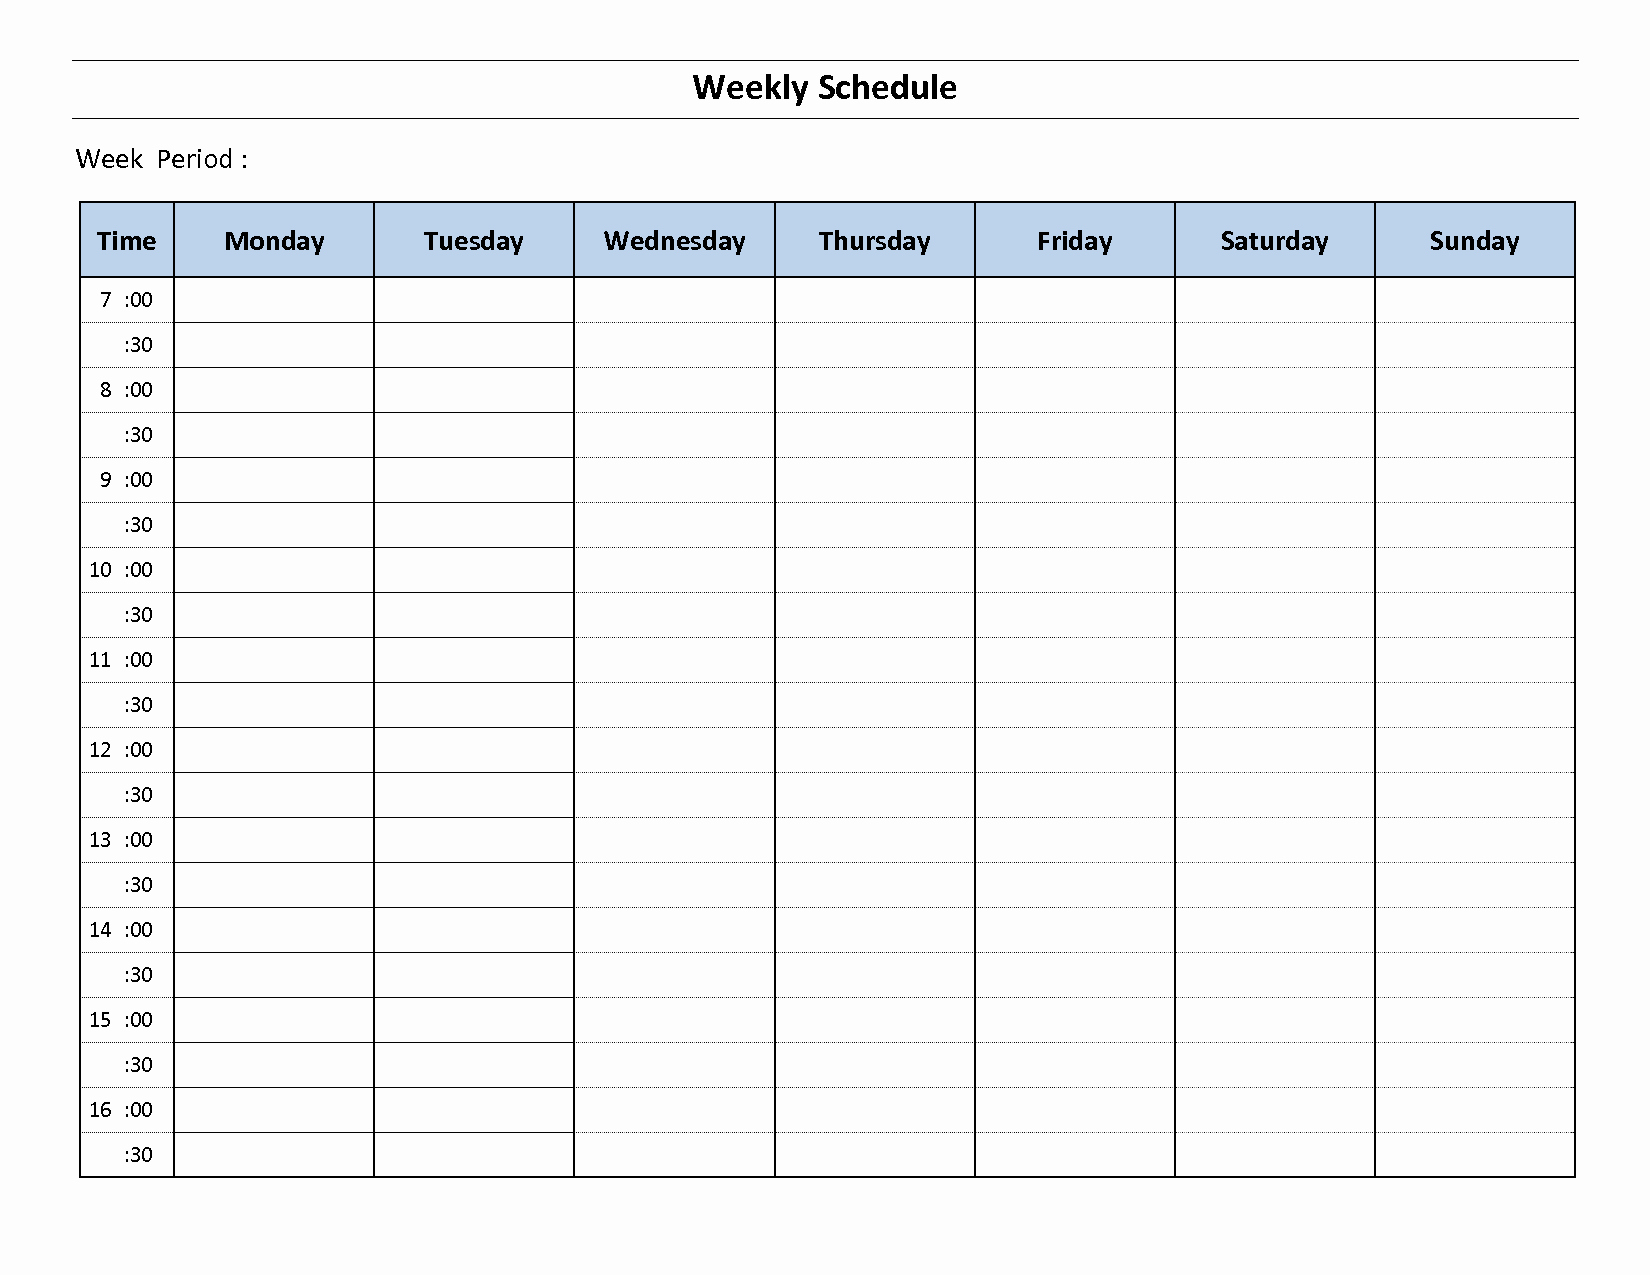 Daily Schedule Template Excel Awesome Construction Schedule Template Excel Free Download